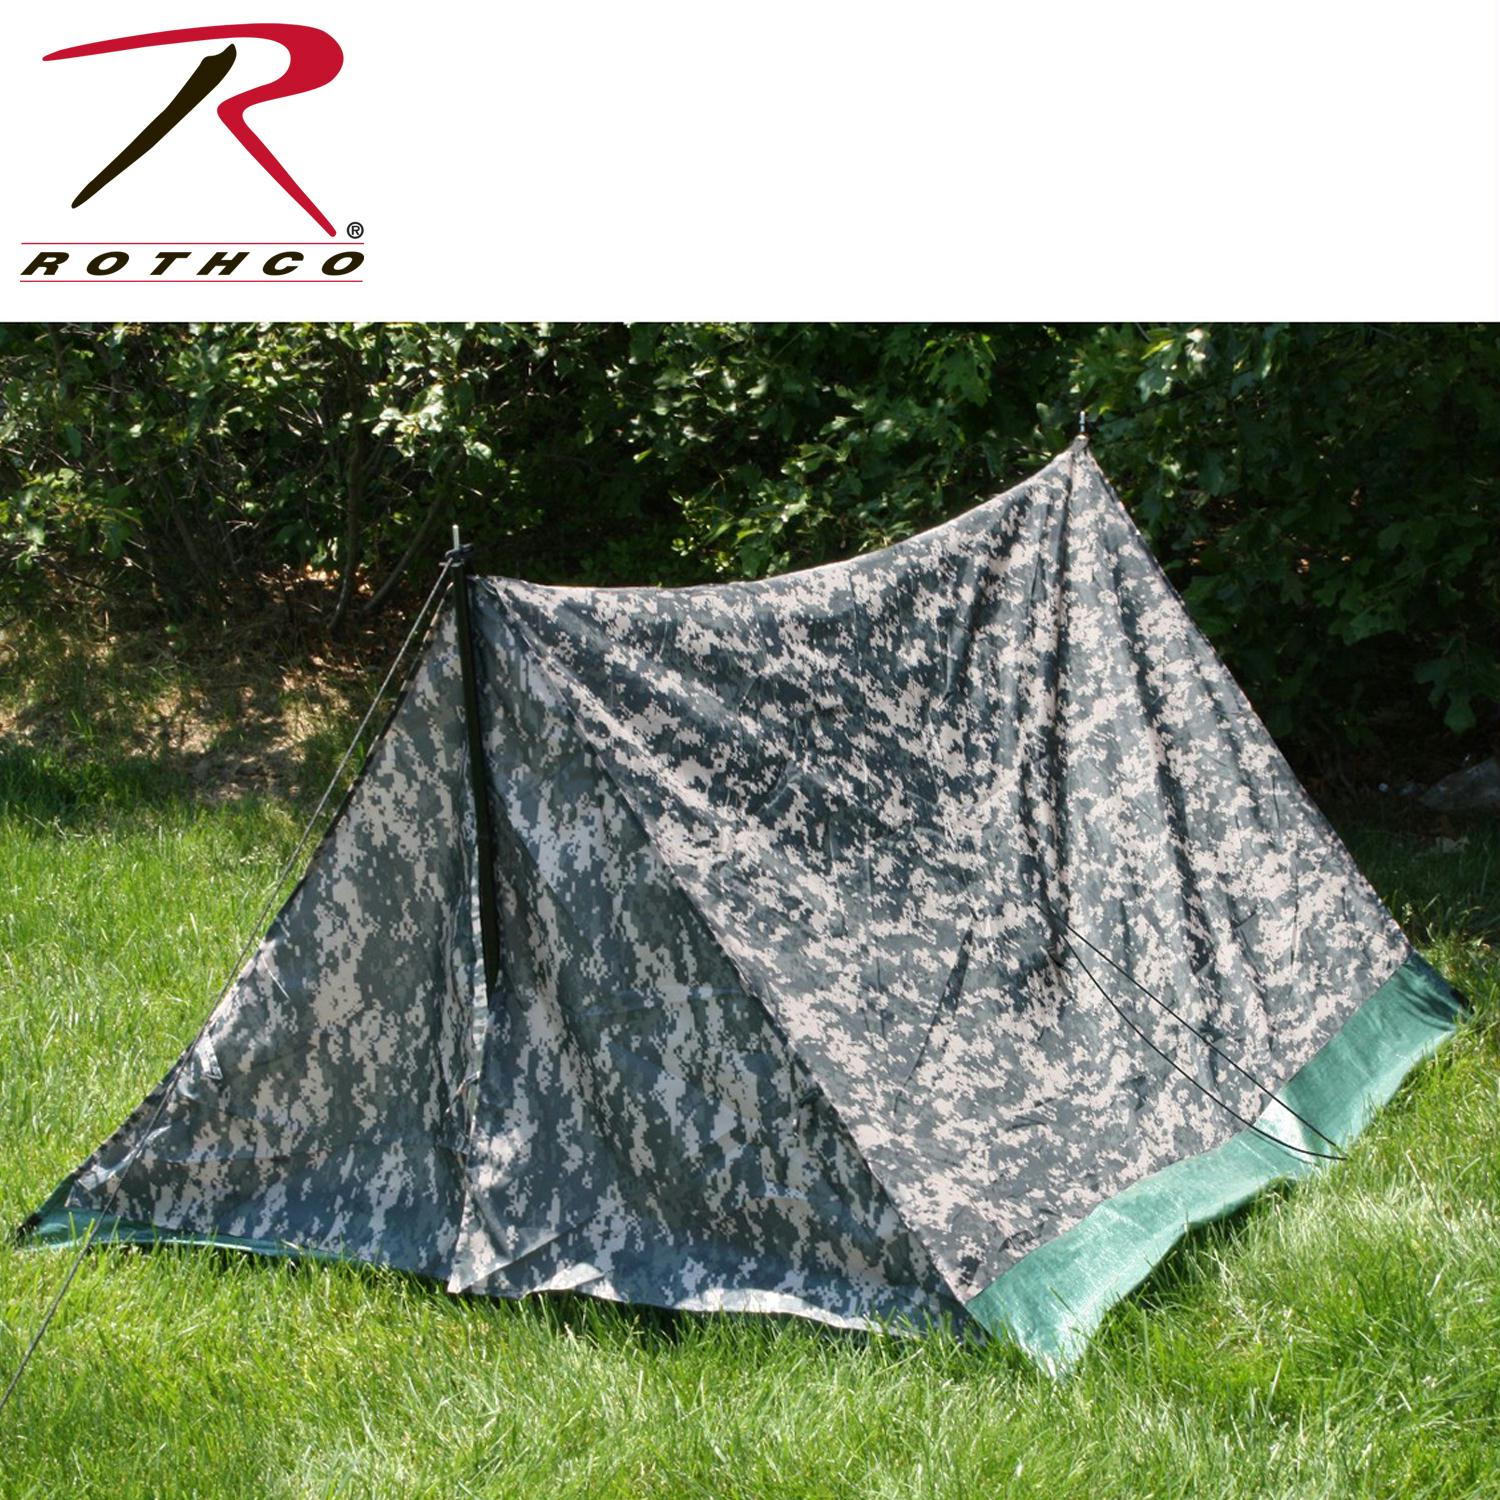 Rothco Camo Two Man Trail Tent